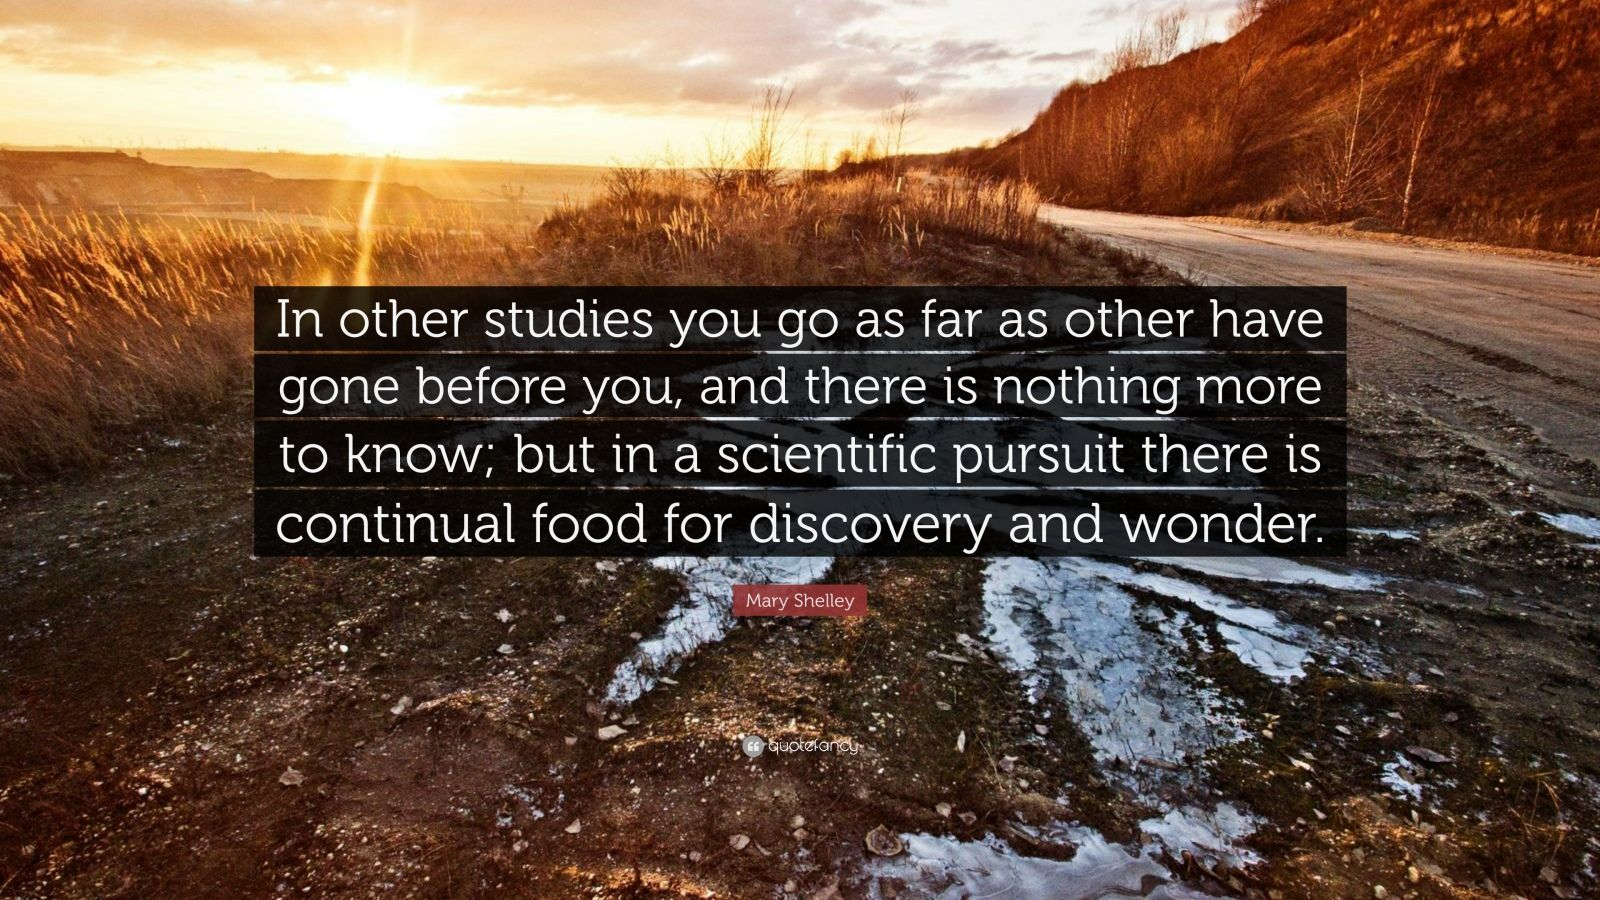 "Mary Shelley Quote: ""In other studies you go as far as other have gone before you, and there is nothing more to know; but in a scientific pursuit there is continual food for discovery and wonder."""